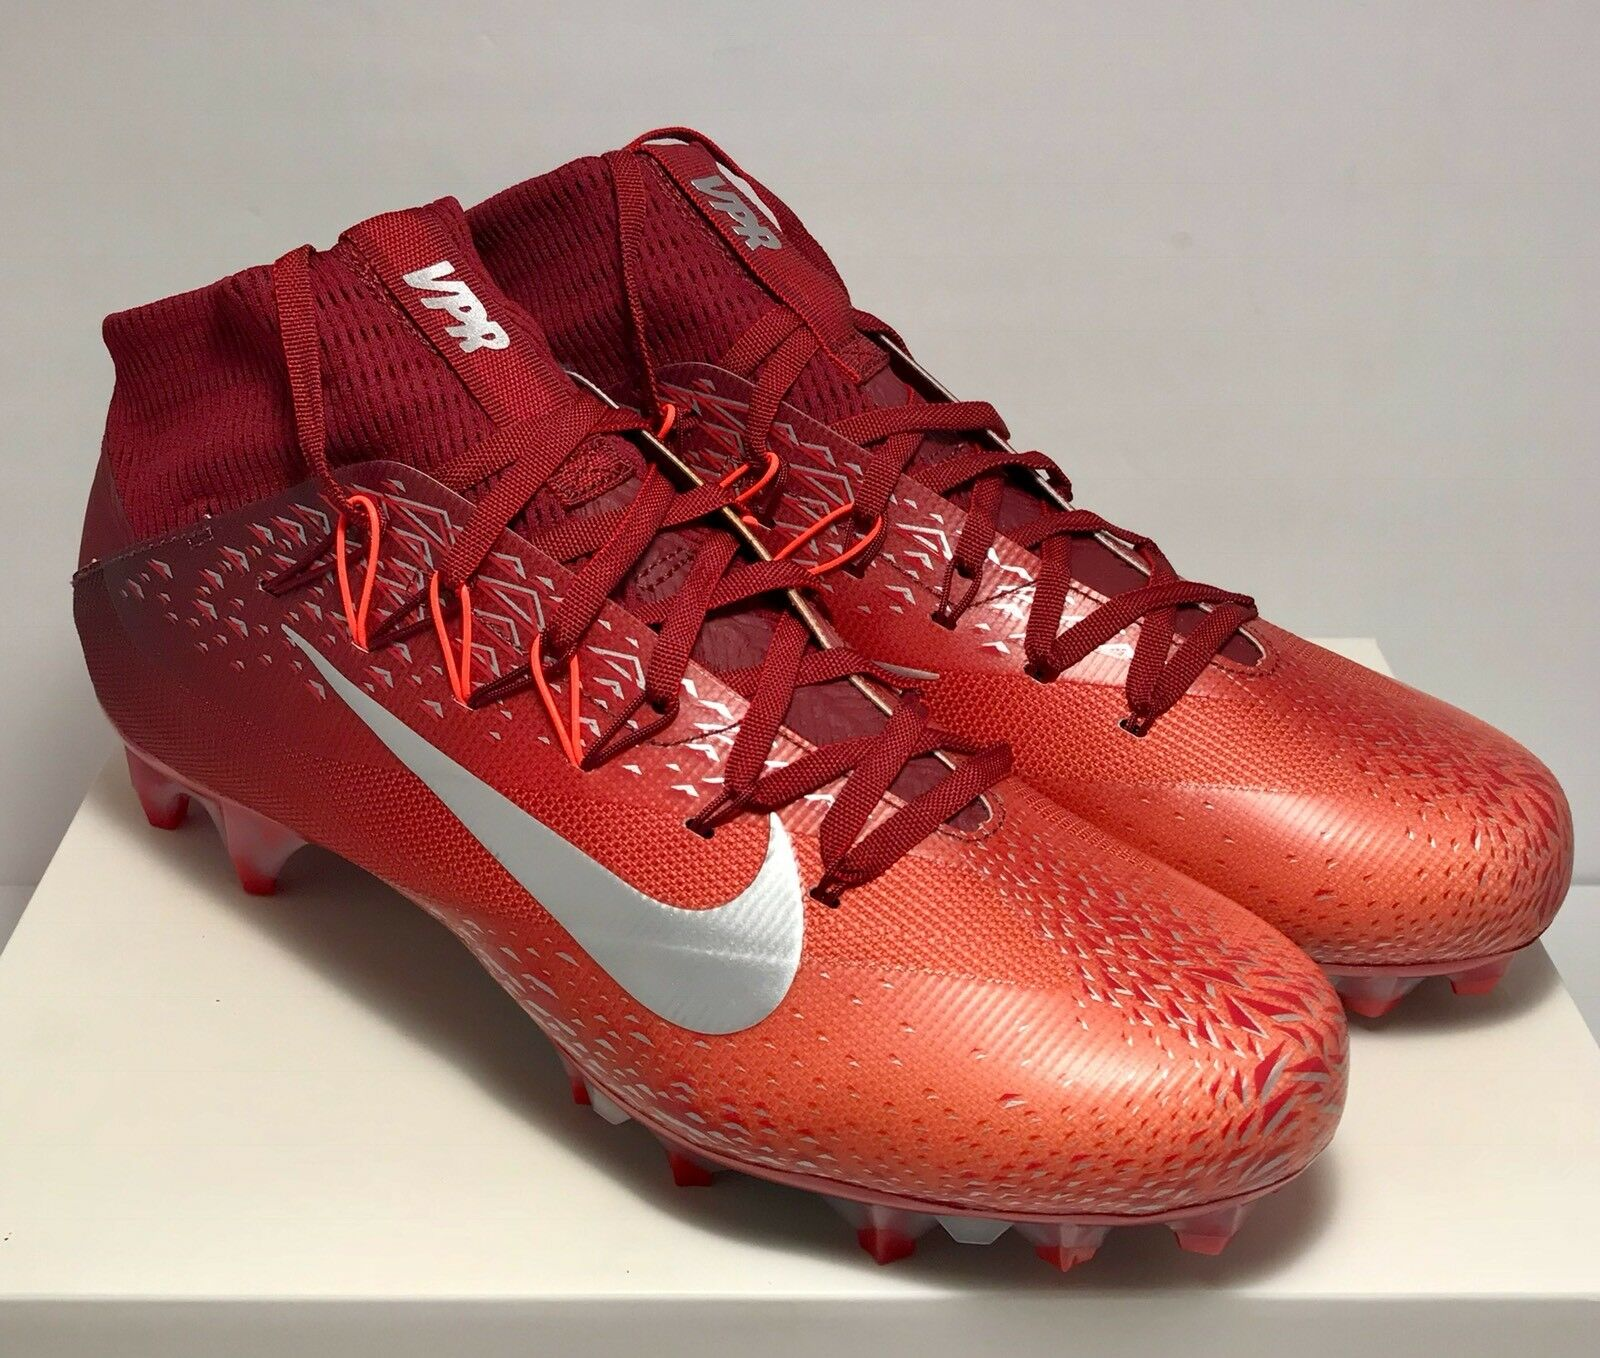 Nike Mens Size 12 Untouchable 2 Shattered Red Platinum Football Cleats  200